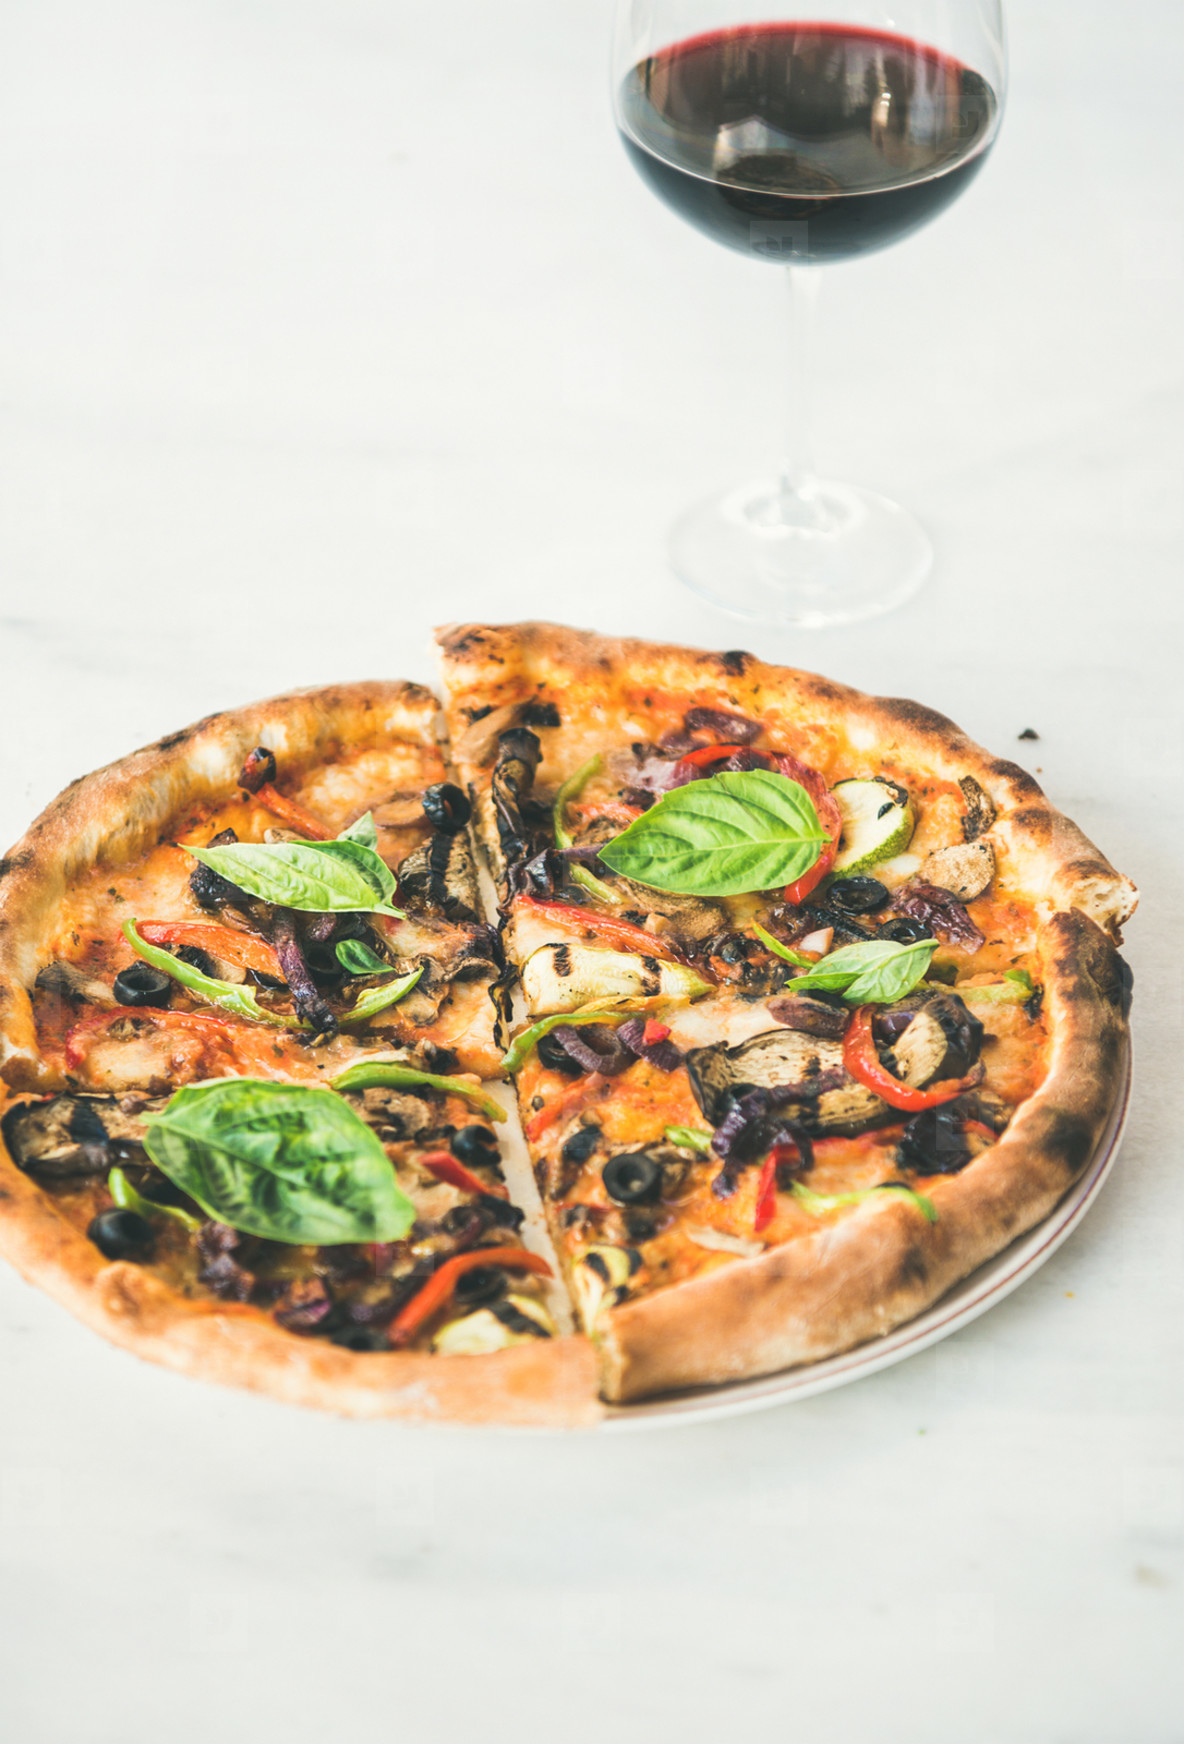 Freshly baked pizza with vegetables  basil and glass of wine